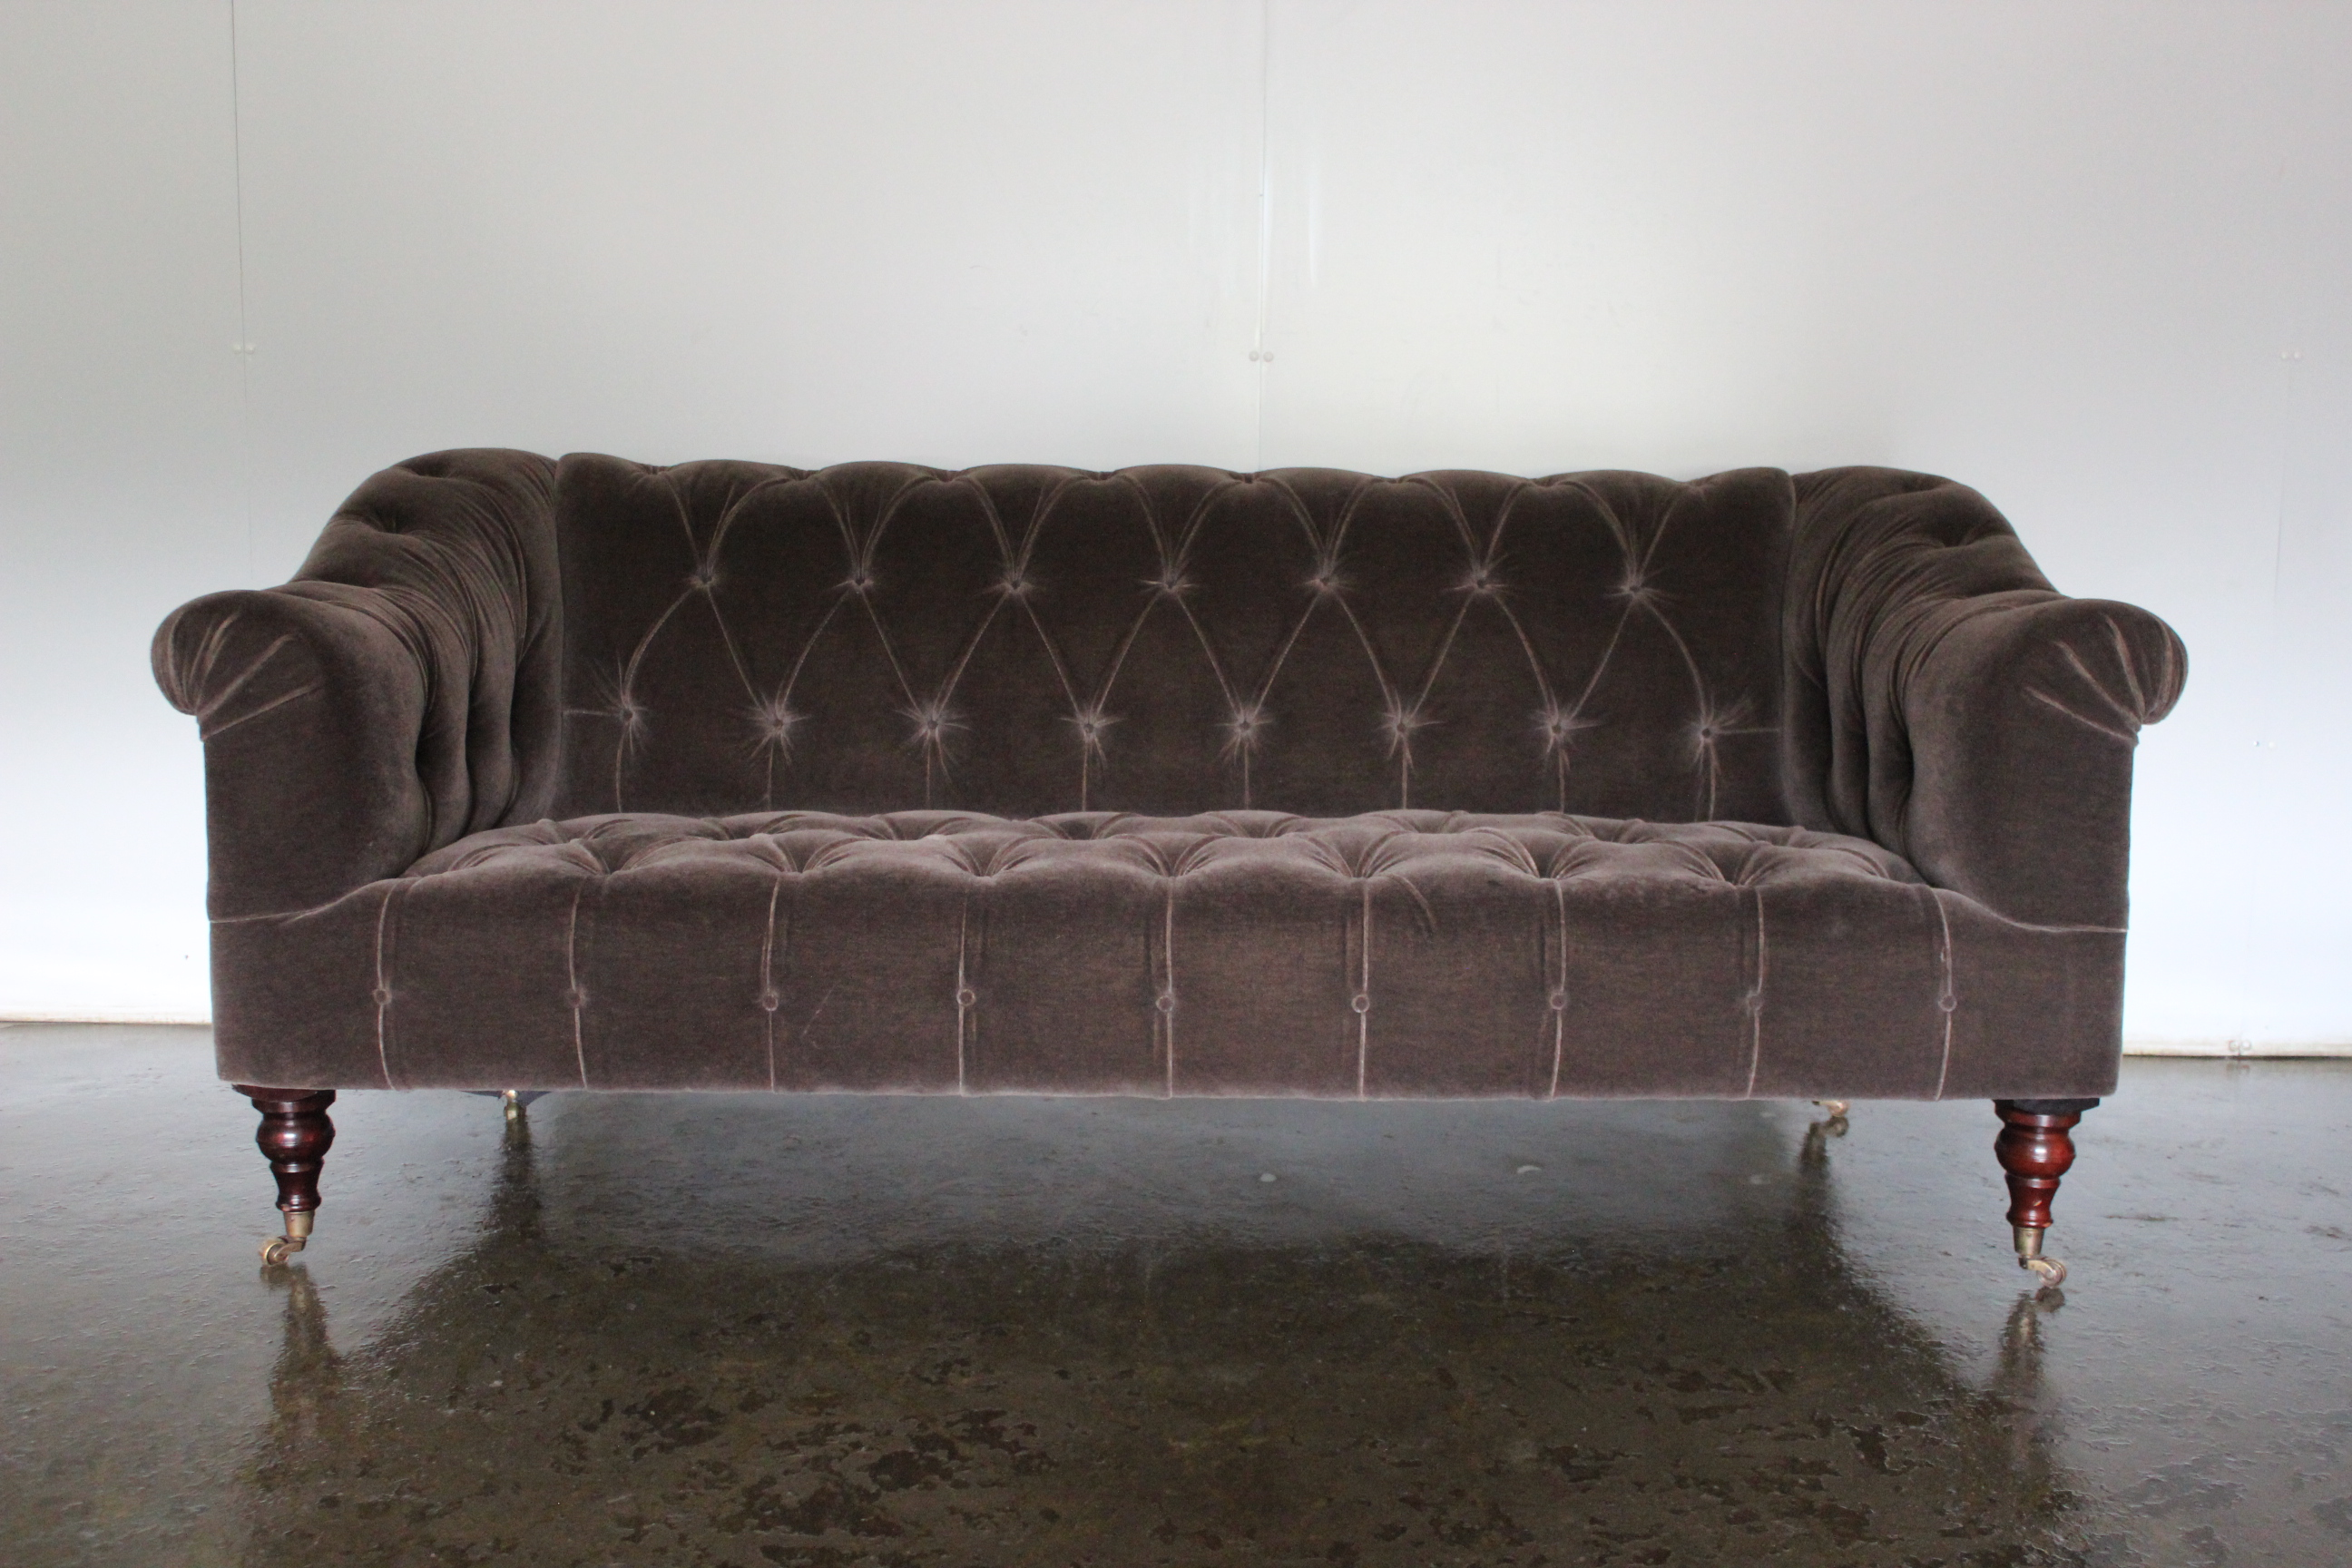 Mint Unique Special Order George Smith Seaton Medium 2 5 Seat Sofa In Mink Mohair Velvet G S Printed Hessian Lord Browns